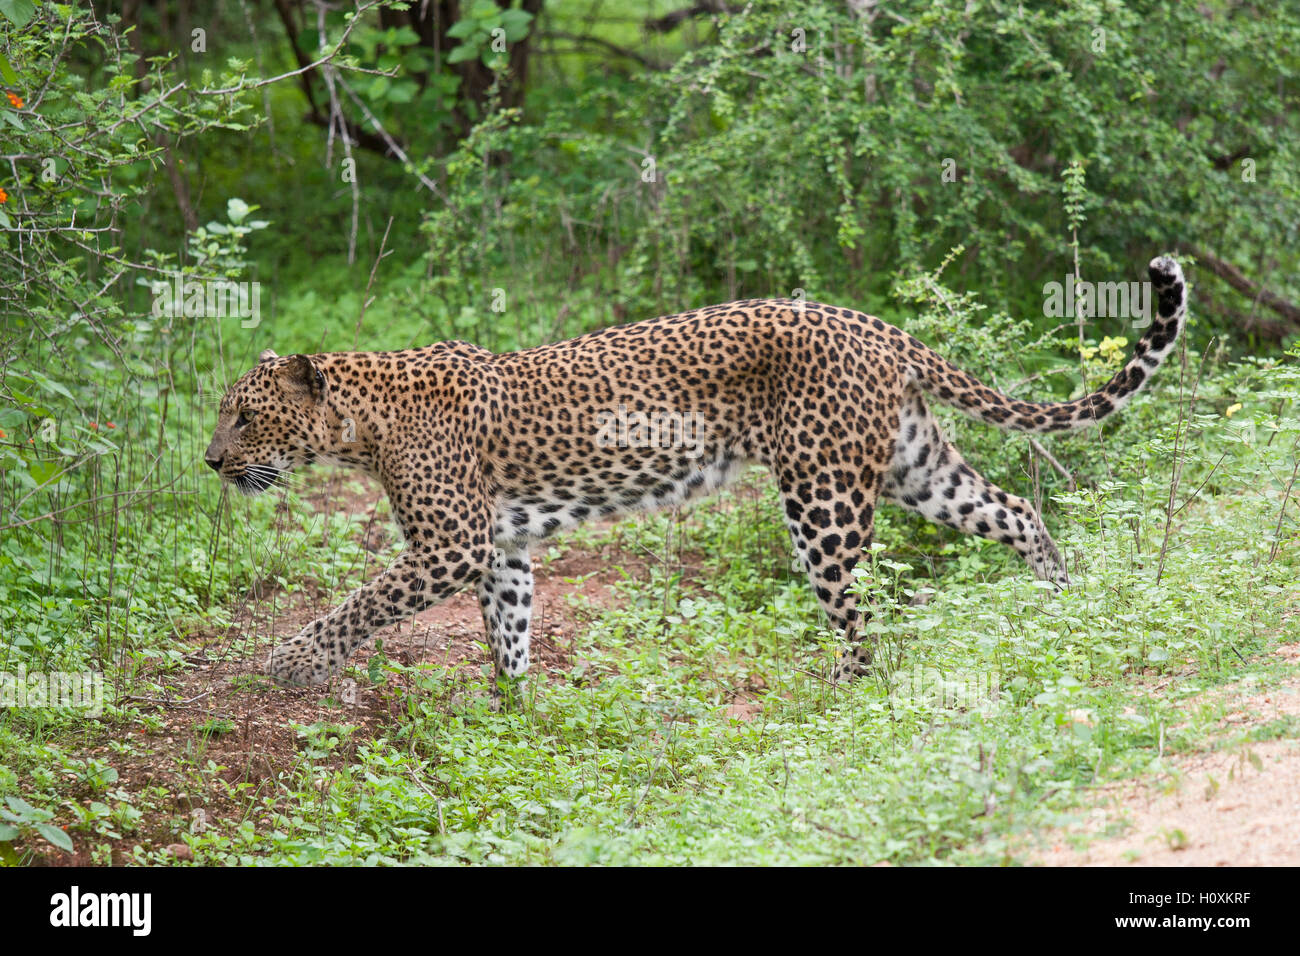 Leopard, Panthera pardus kotiya, in Yala National Wildlife Park, Sri Lanka - Stock Image